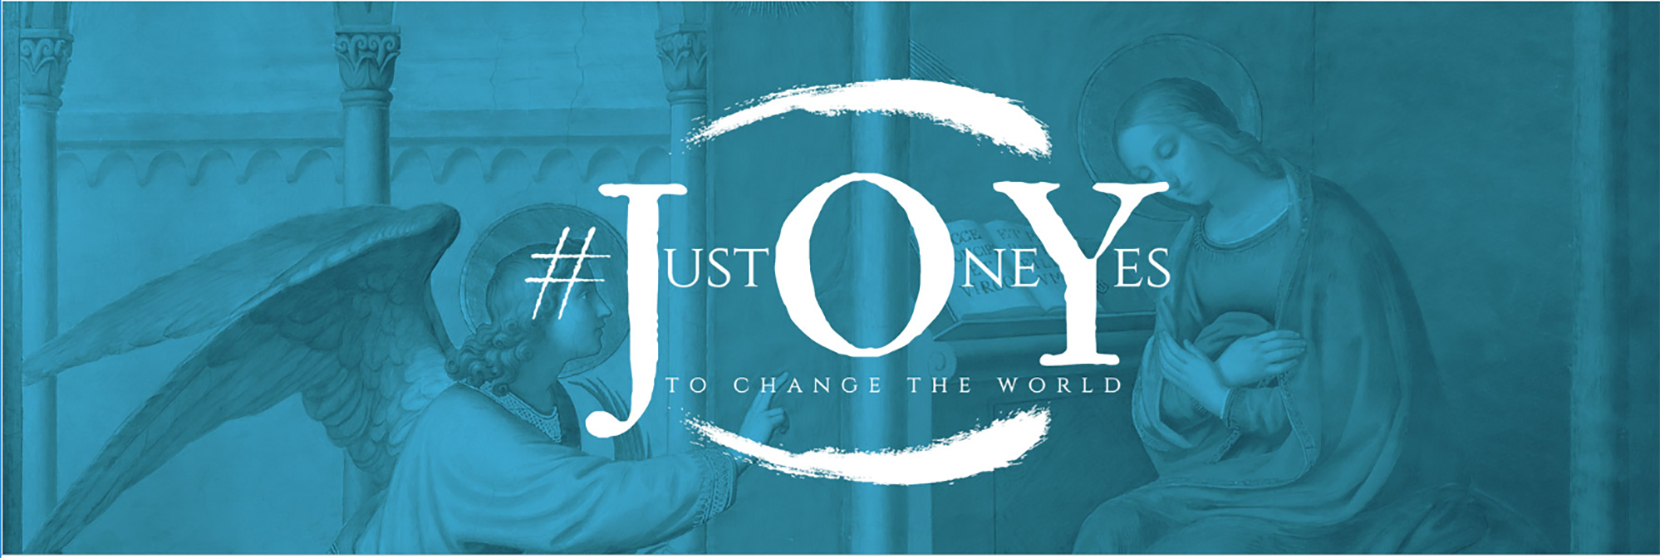 Advent 2019 - Just One Yes